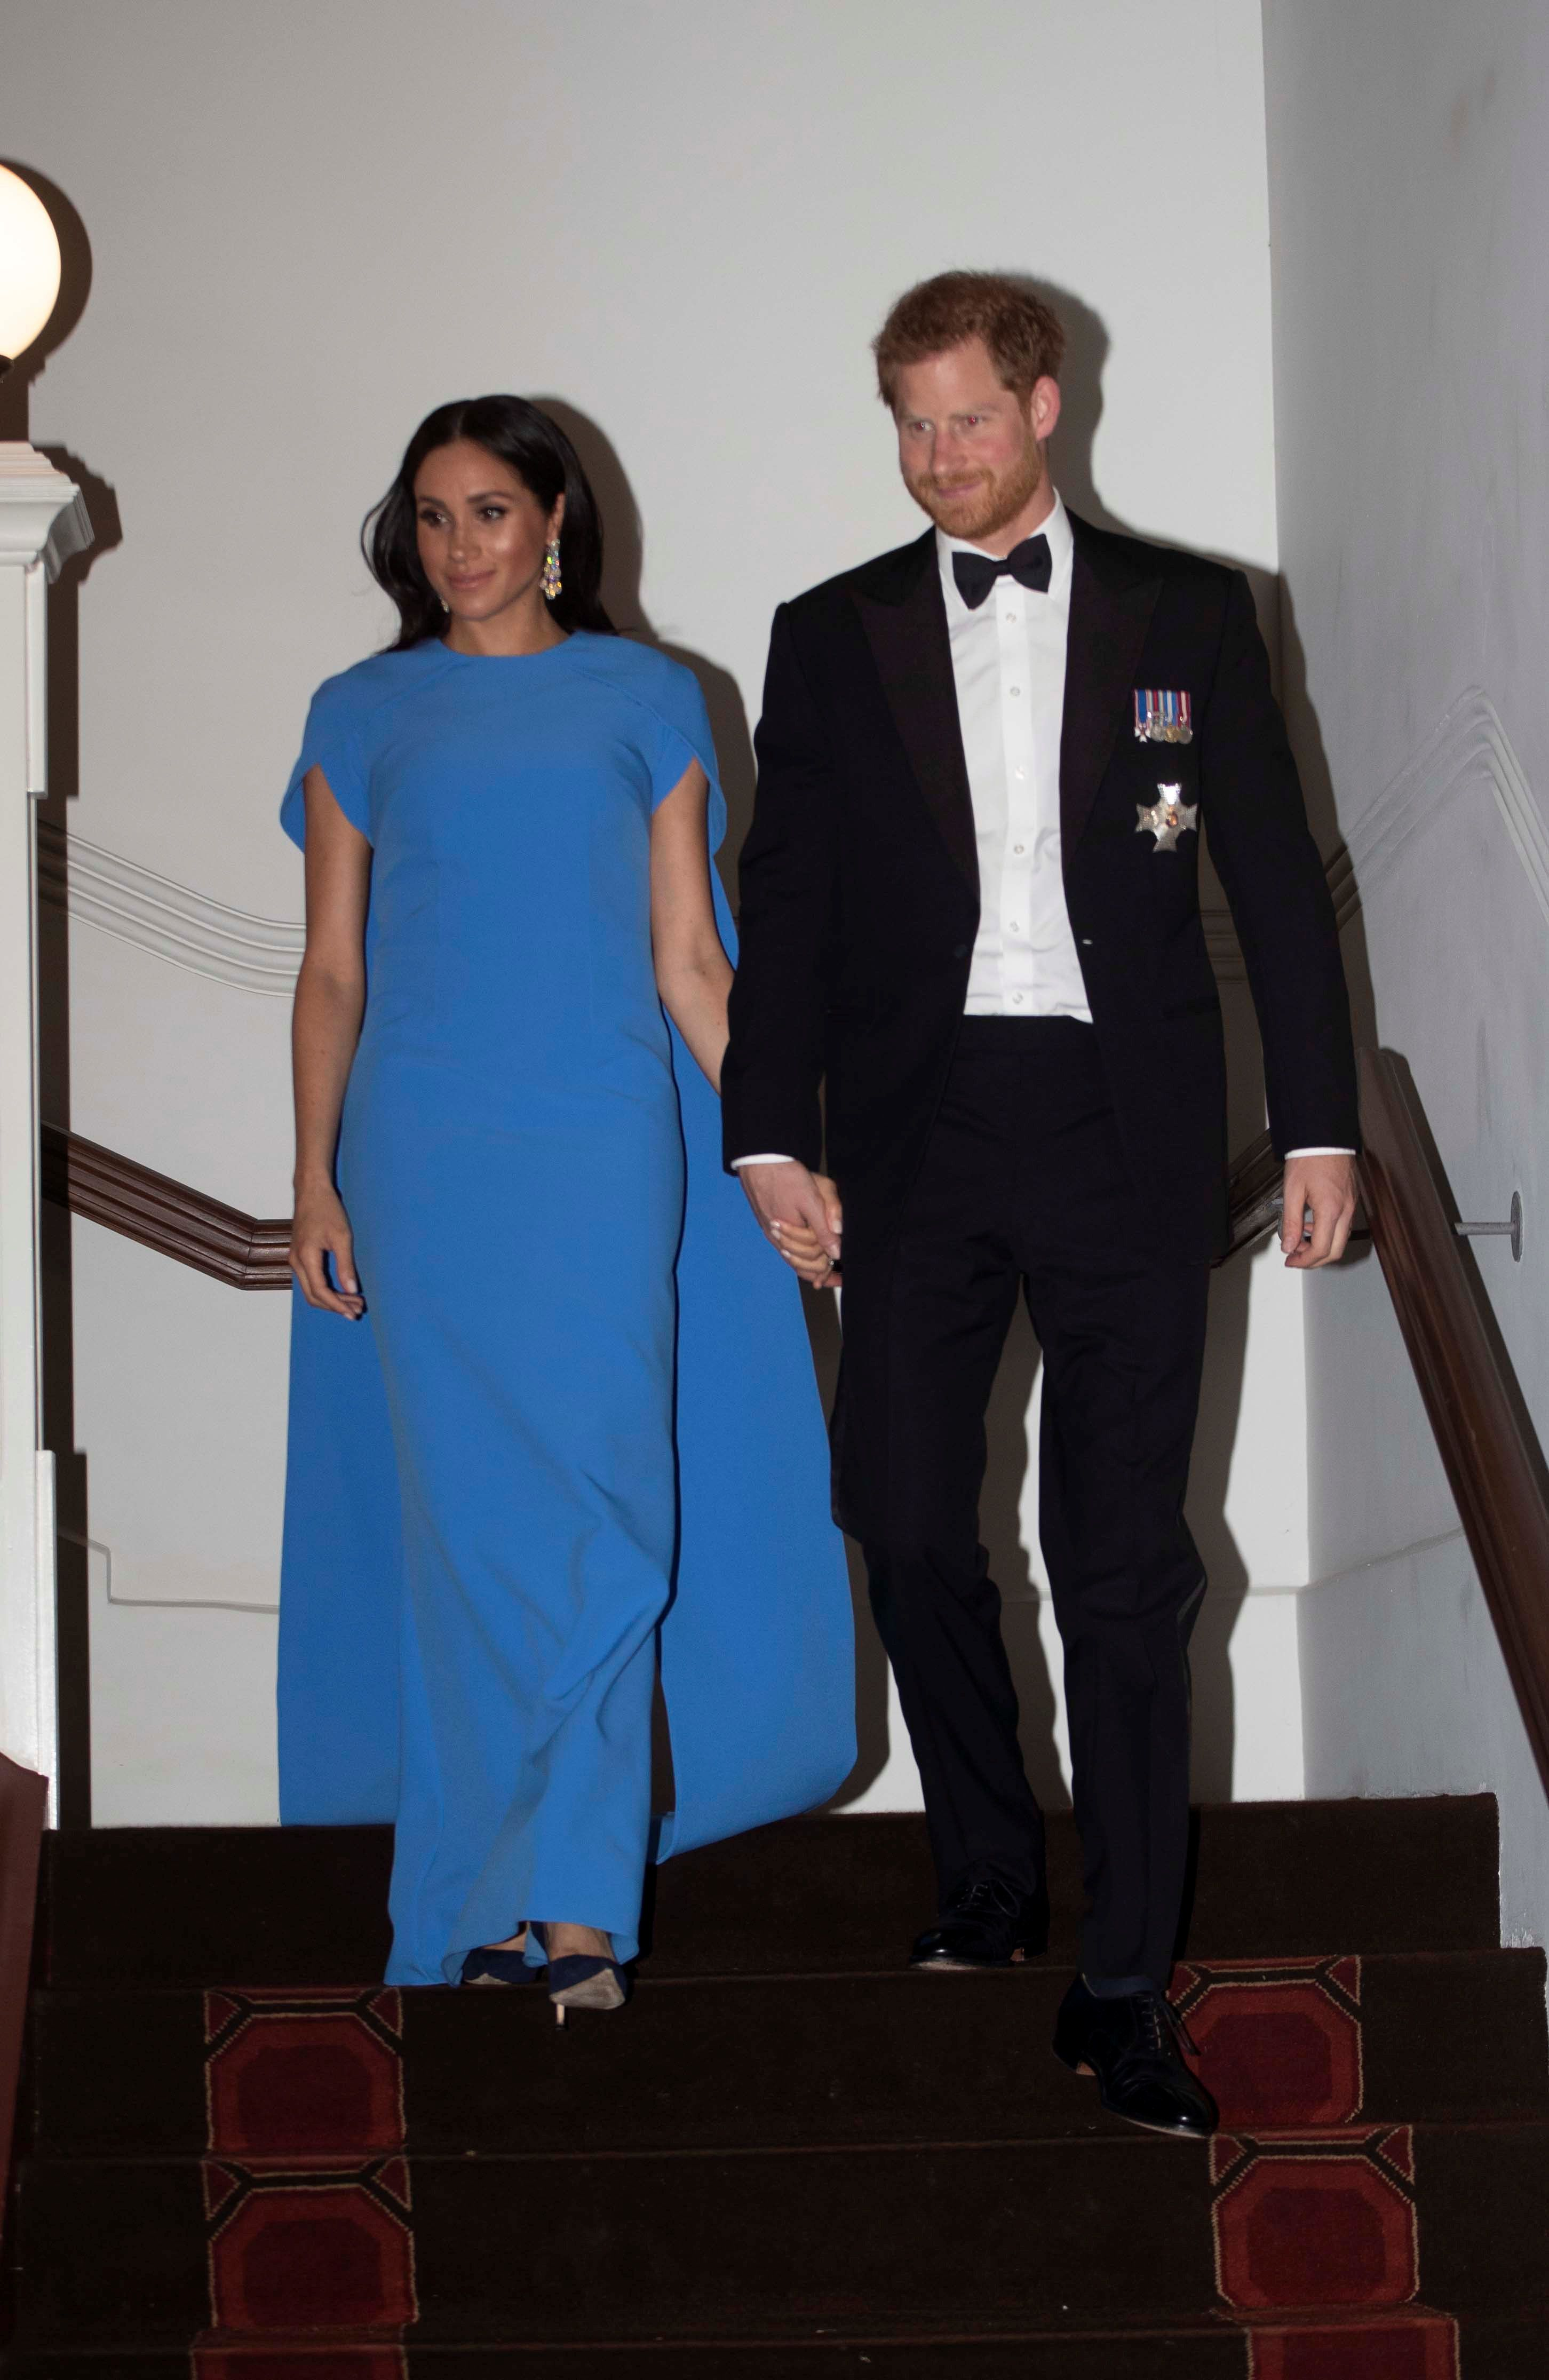 Britain's Prince Harry and Meghan, the Duchess of Sussex, arrive for a reception and state dinner at Grand Pacific Hotel in Suva, Fiji October 23, 2018. Ian Vogler/Pool via REUTERS